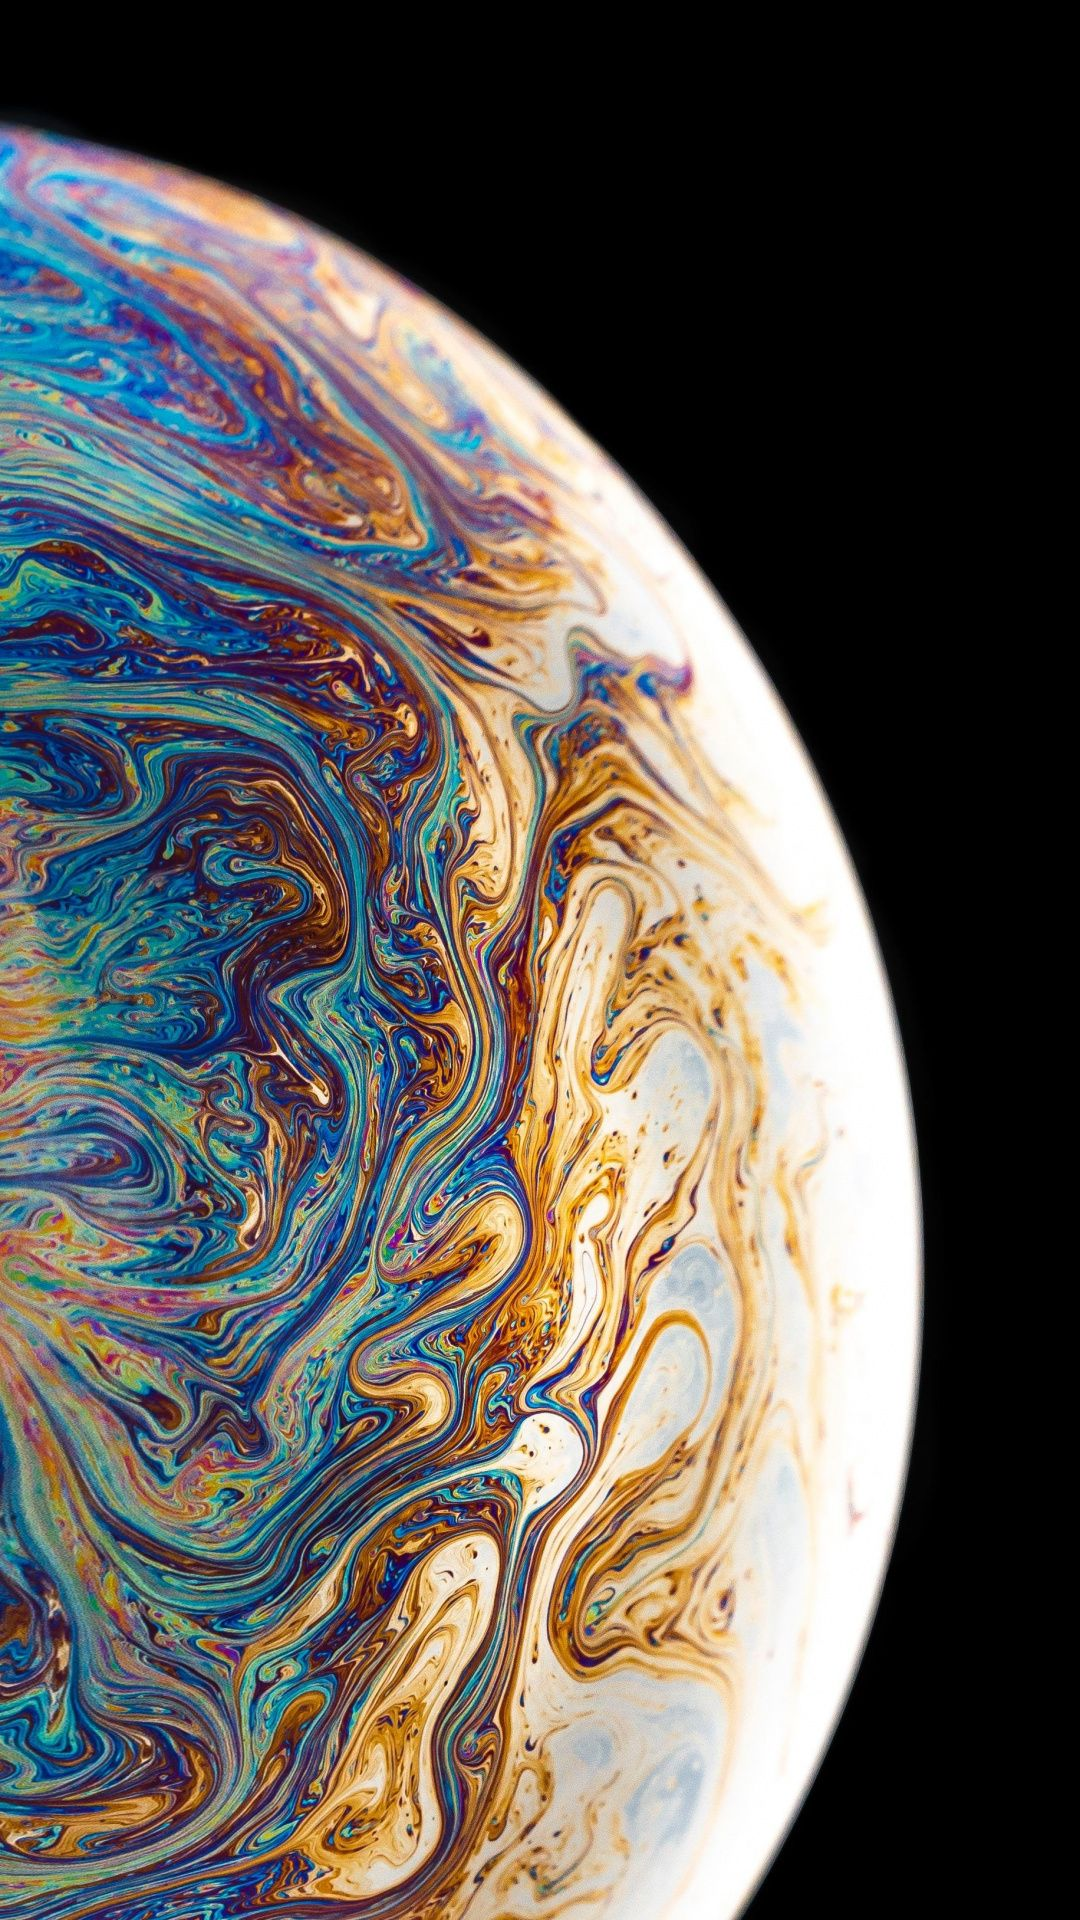 Stock Bubble Surface Colorful 1080x1920 Wallpaper Trippy Iphone Wallpaper Colourful Wallpaper Iphone Art Wallpaper Iphone